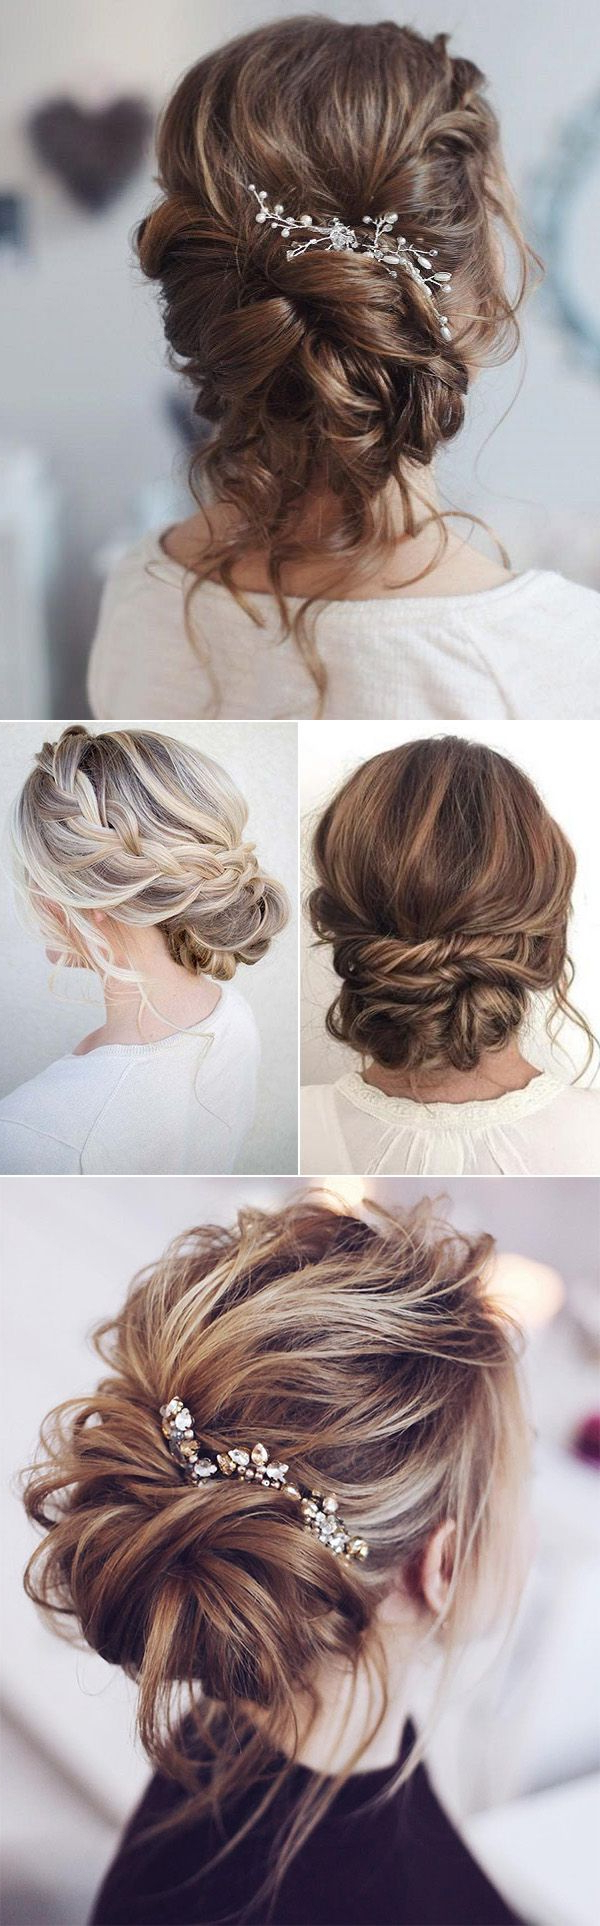 25 Drop Dead Bridal Updo Hairstyles Ideas For Any Wedding Venues Inside Most Up To Date Subtle Curls And Bun Hairstyles For Wedding (Gallery 12 of 20)